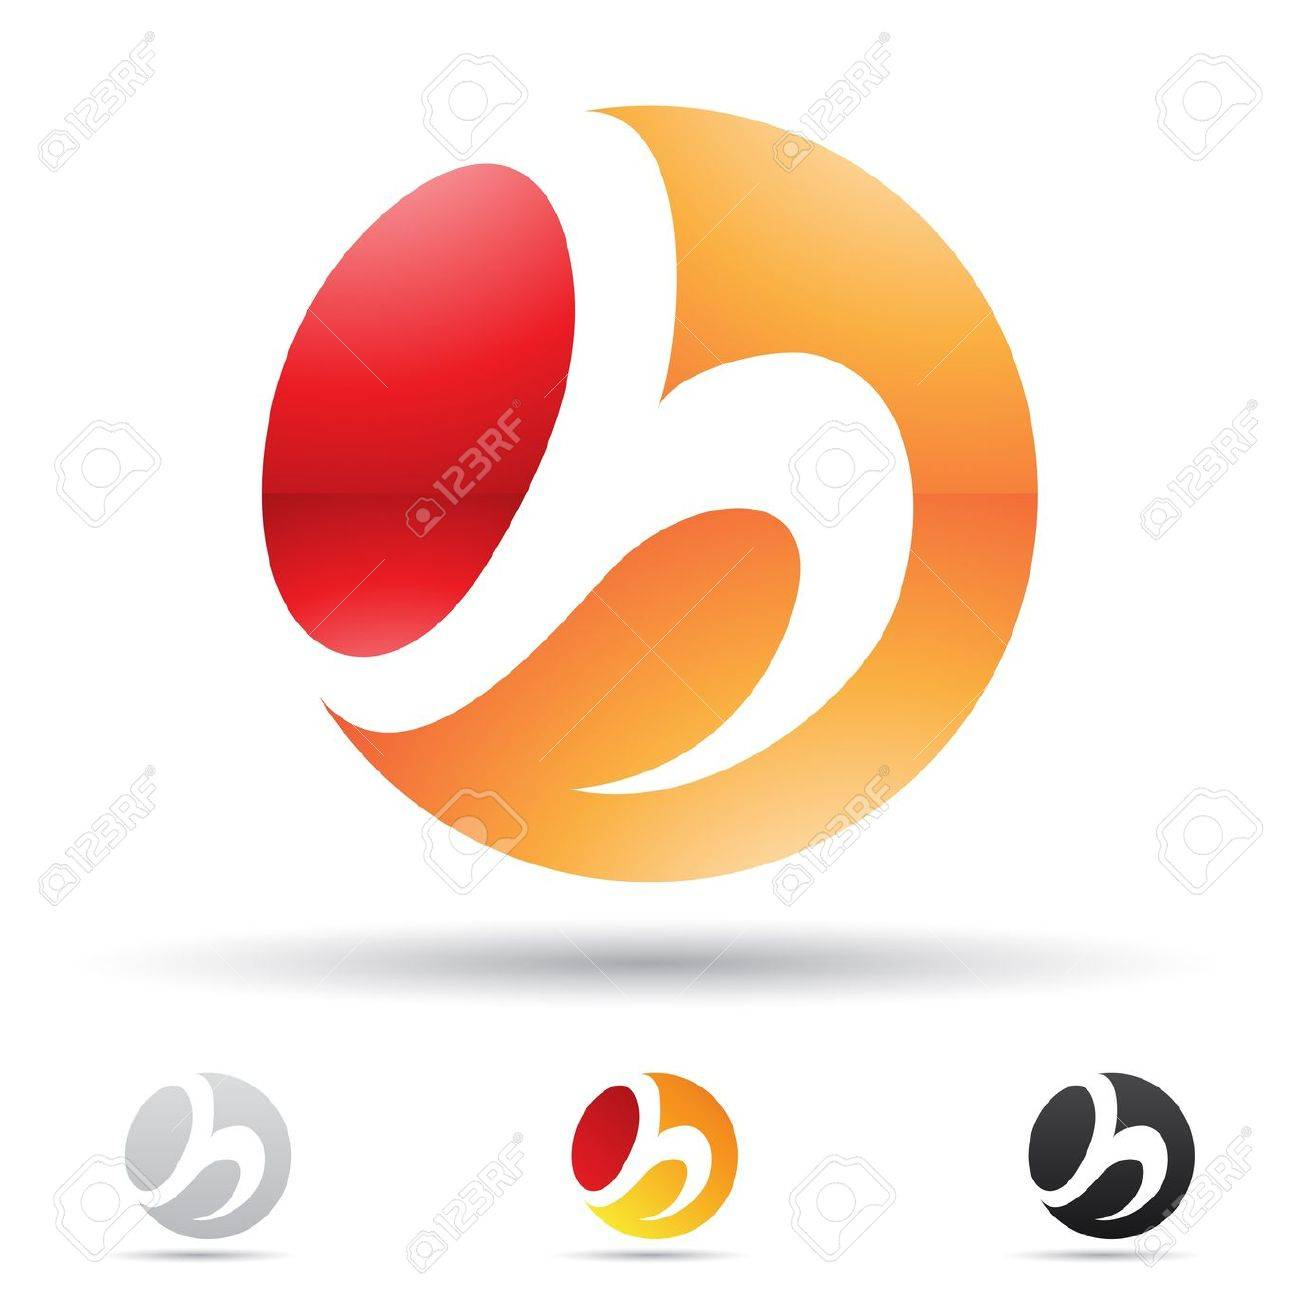 illustration of abstract icons based on the letter H Stock Vector - 14621854